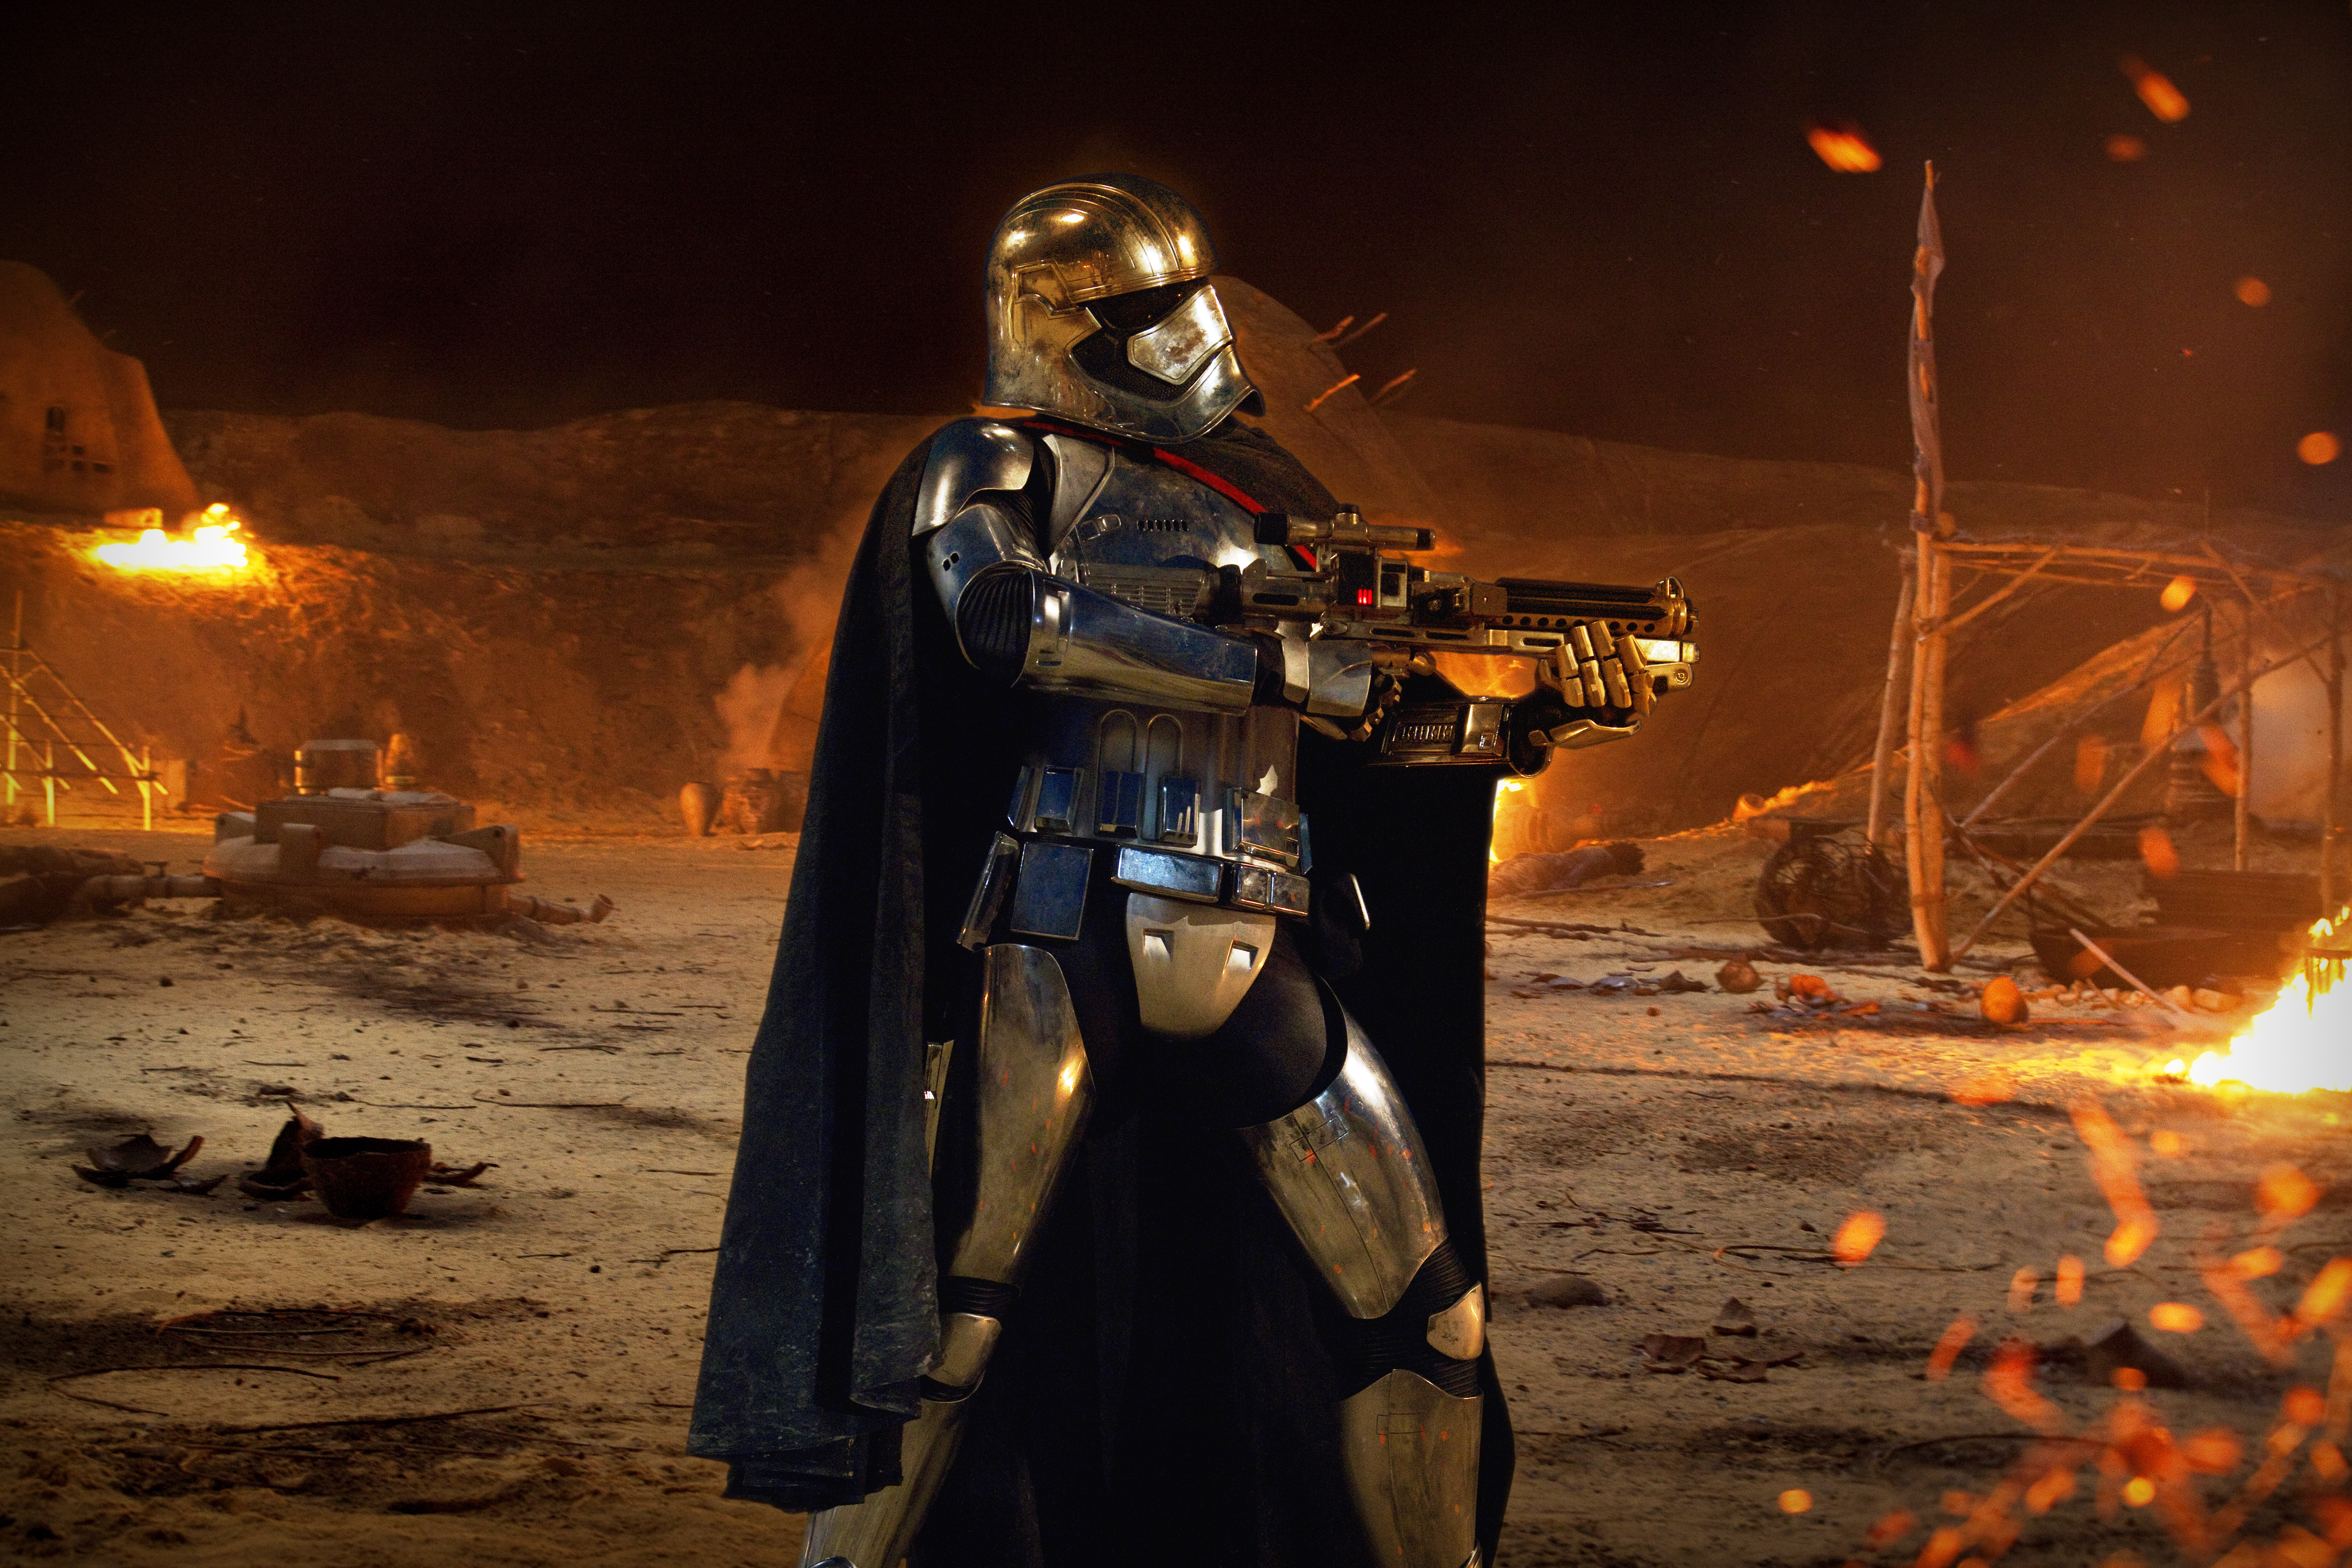 Star Wars Episode Vii The Force Awakens Wallpapers Pictures Images